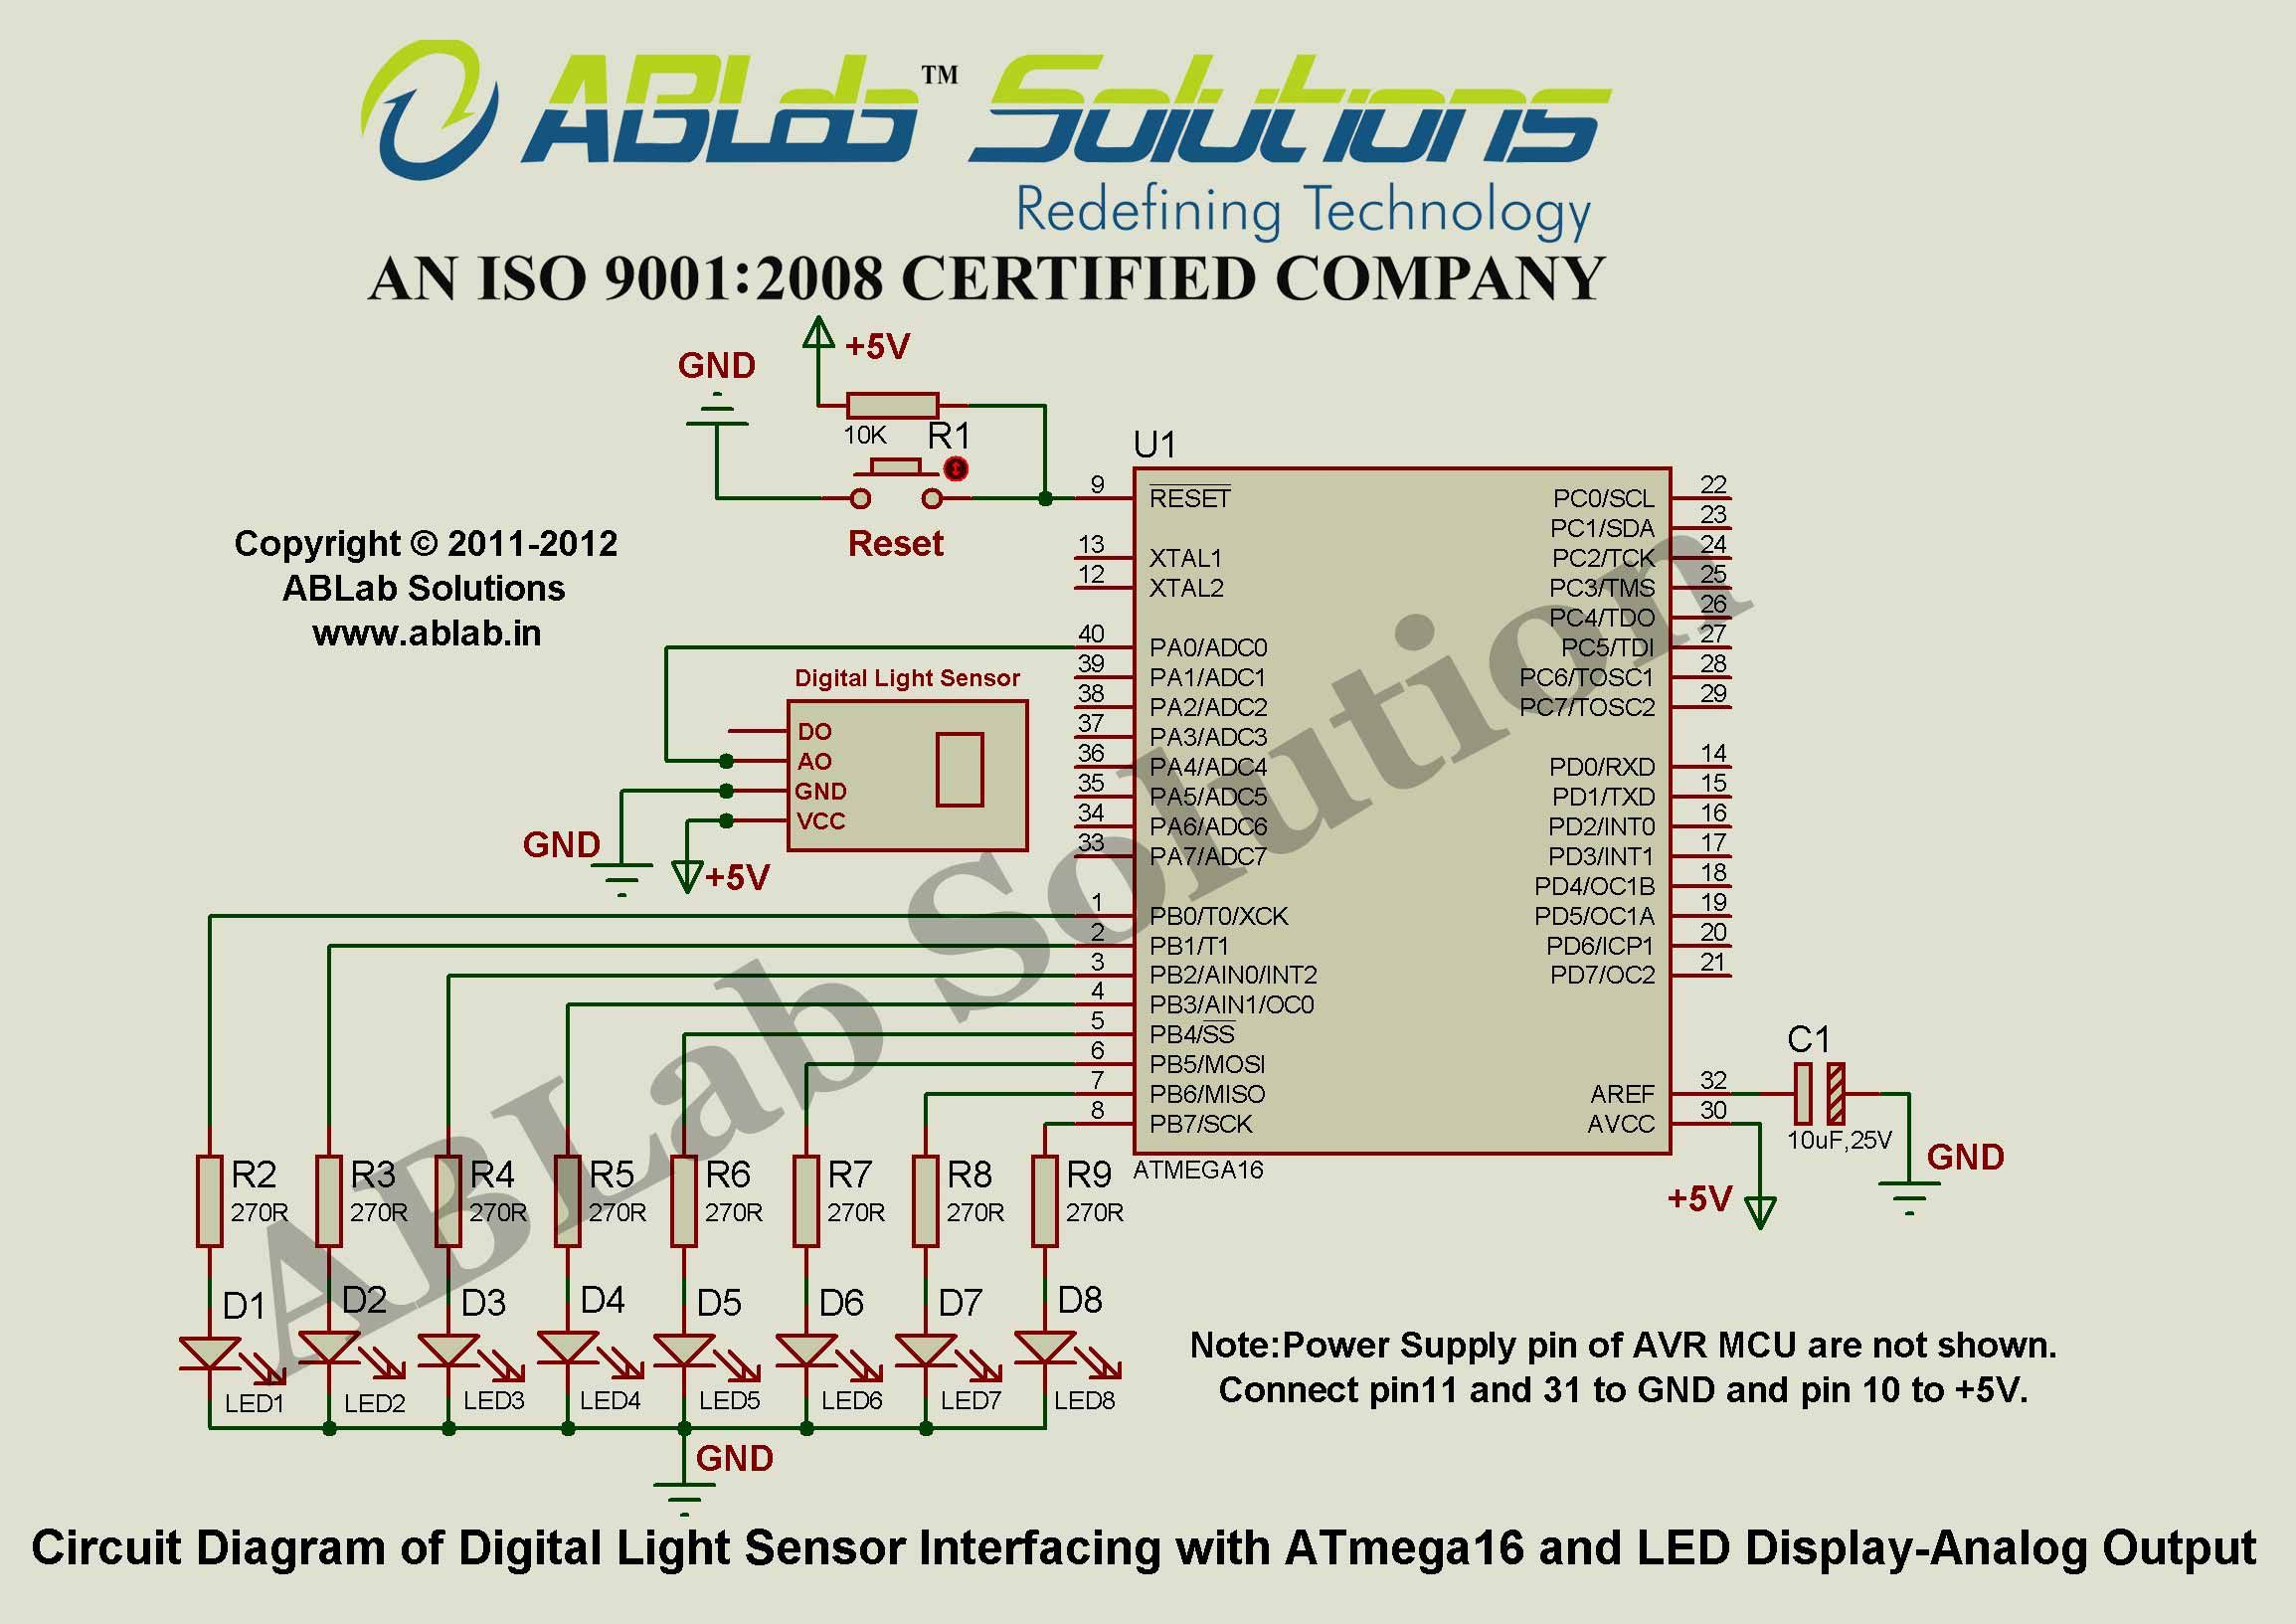 small resolution of digital light sensor interfacing with avr atmega16 microcontroller and led display analog output circuit diagram ablab solutions